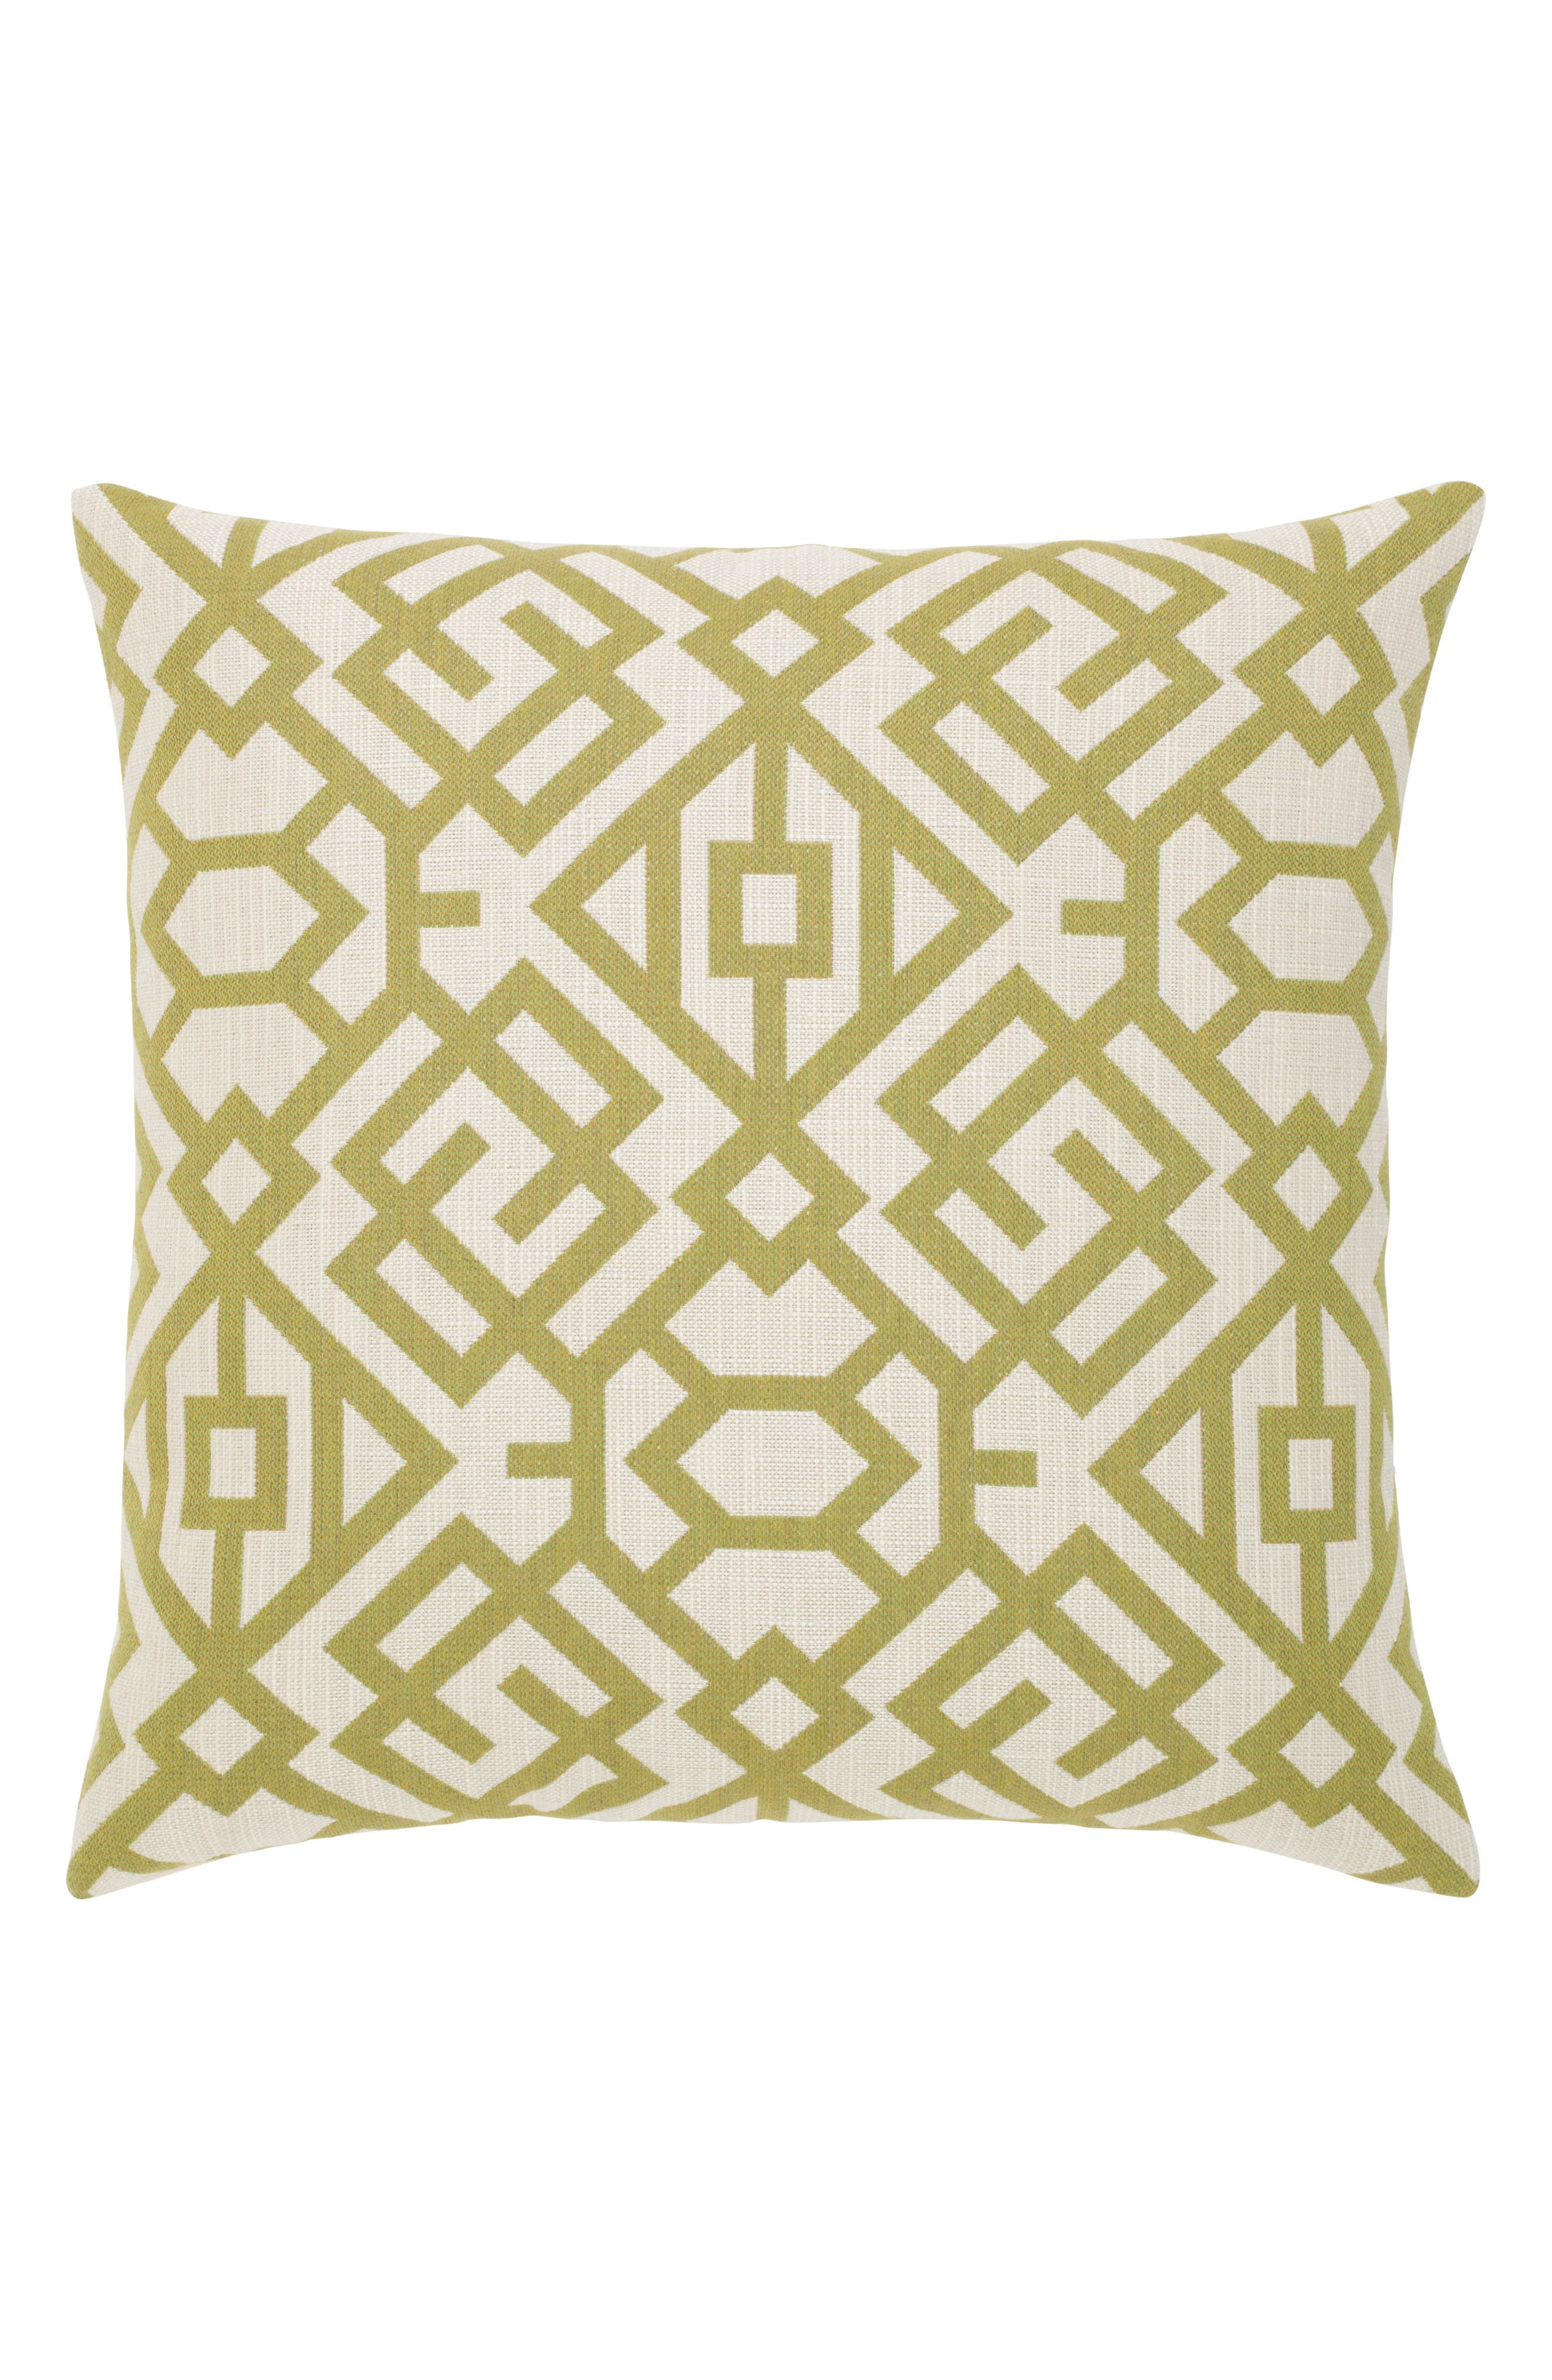 ELAINE SMITH,                             Fern Gate Indoor/Outdoor Accent Pillow,                             Main thumbnail 1, color,                             300